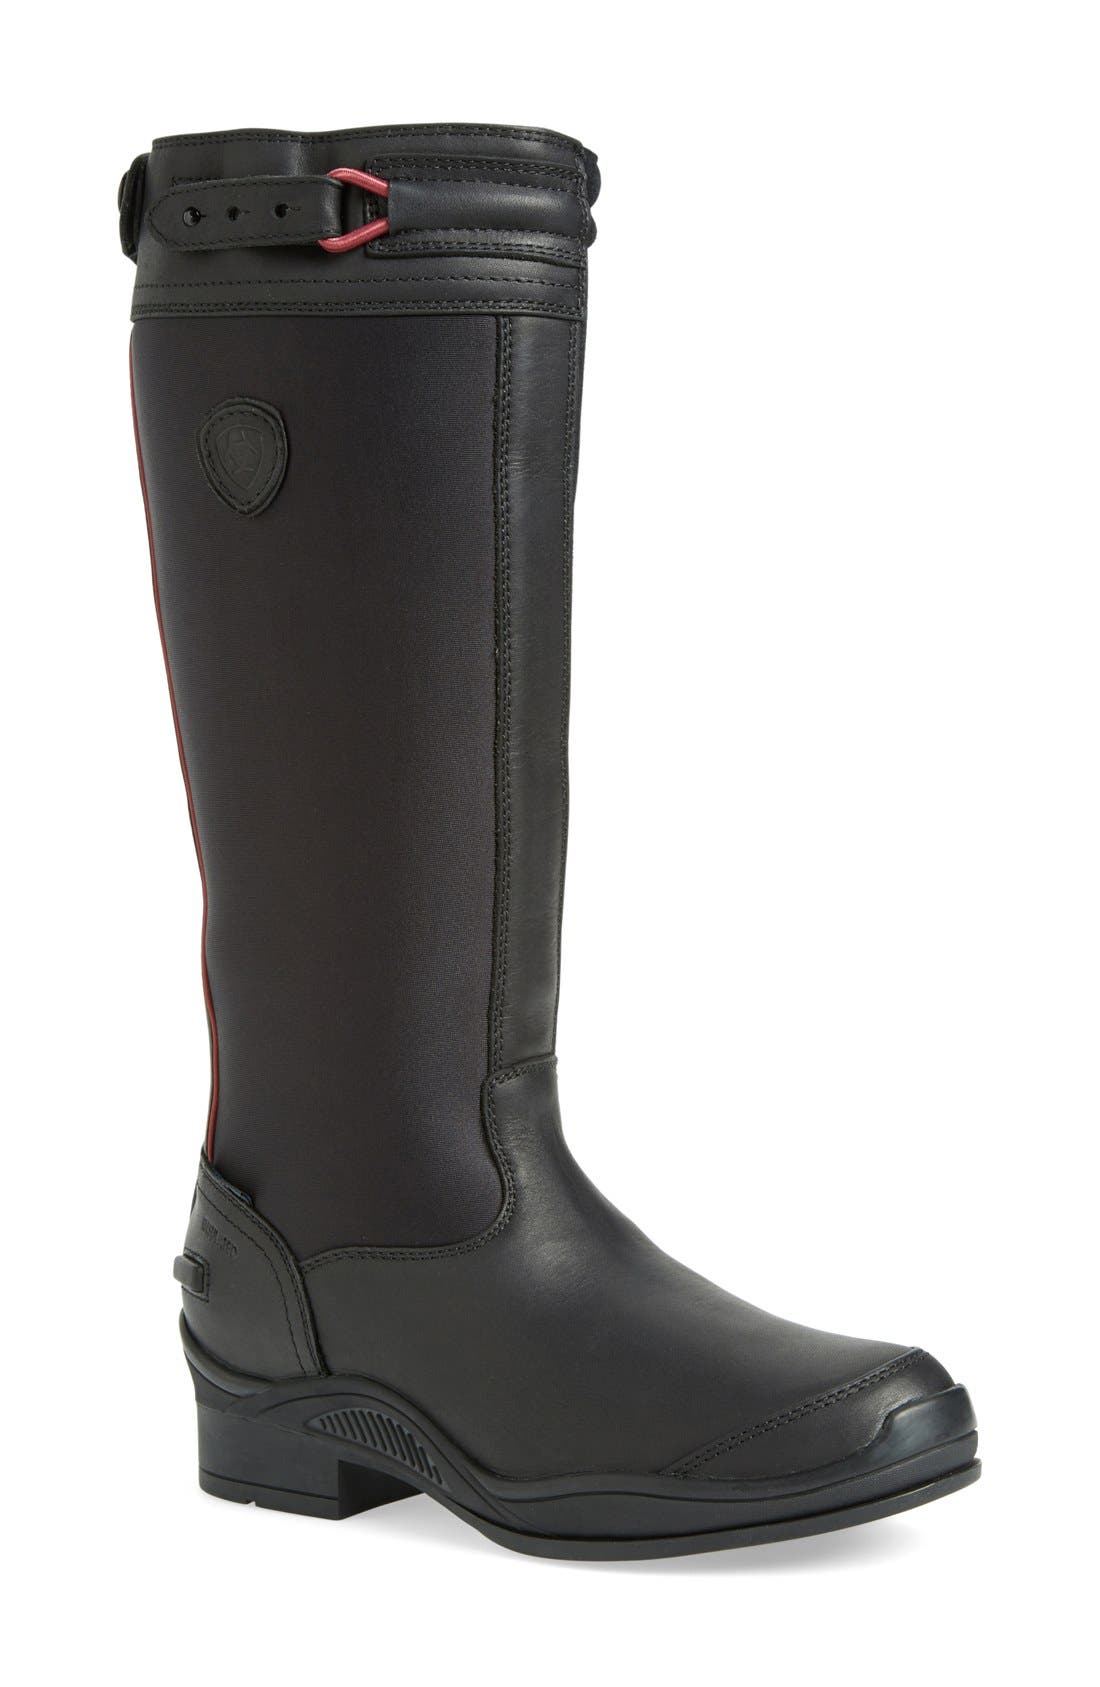 ARIAT 'Extreme H20' Waterproof Boot, Main, color, 001